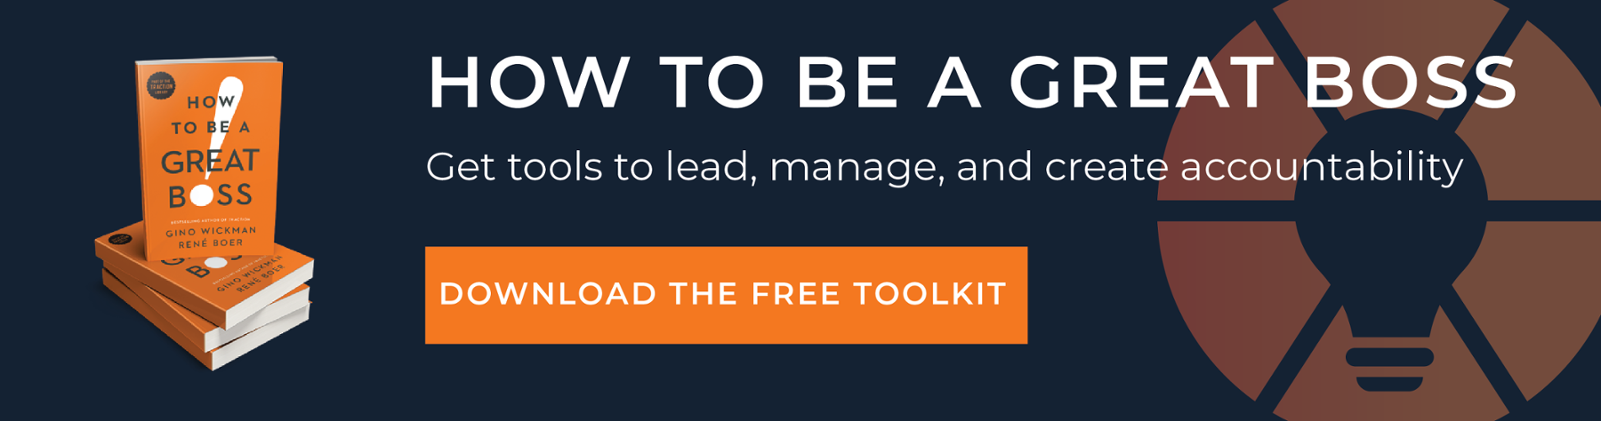 download the how to be a great boss toolkit